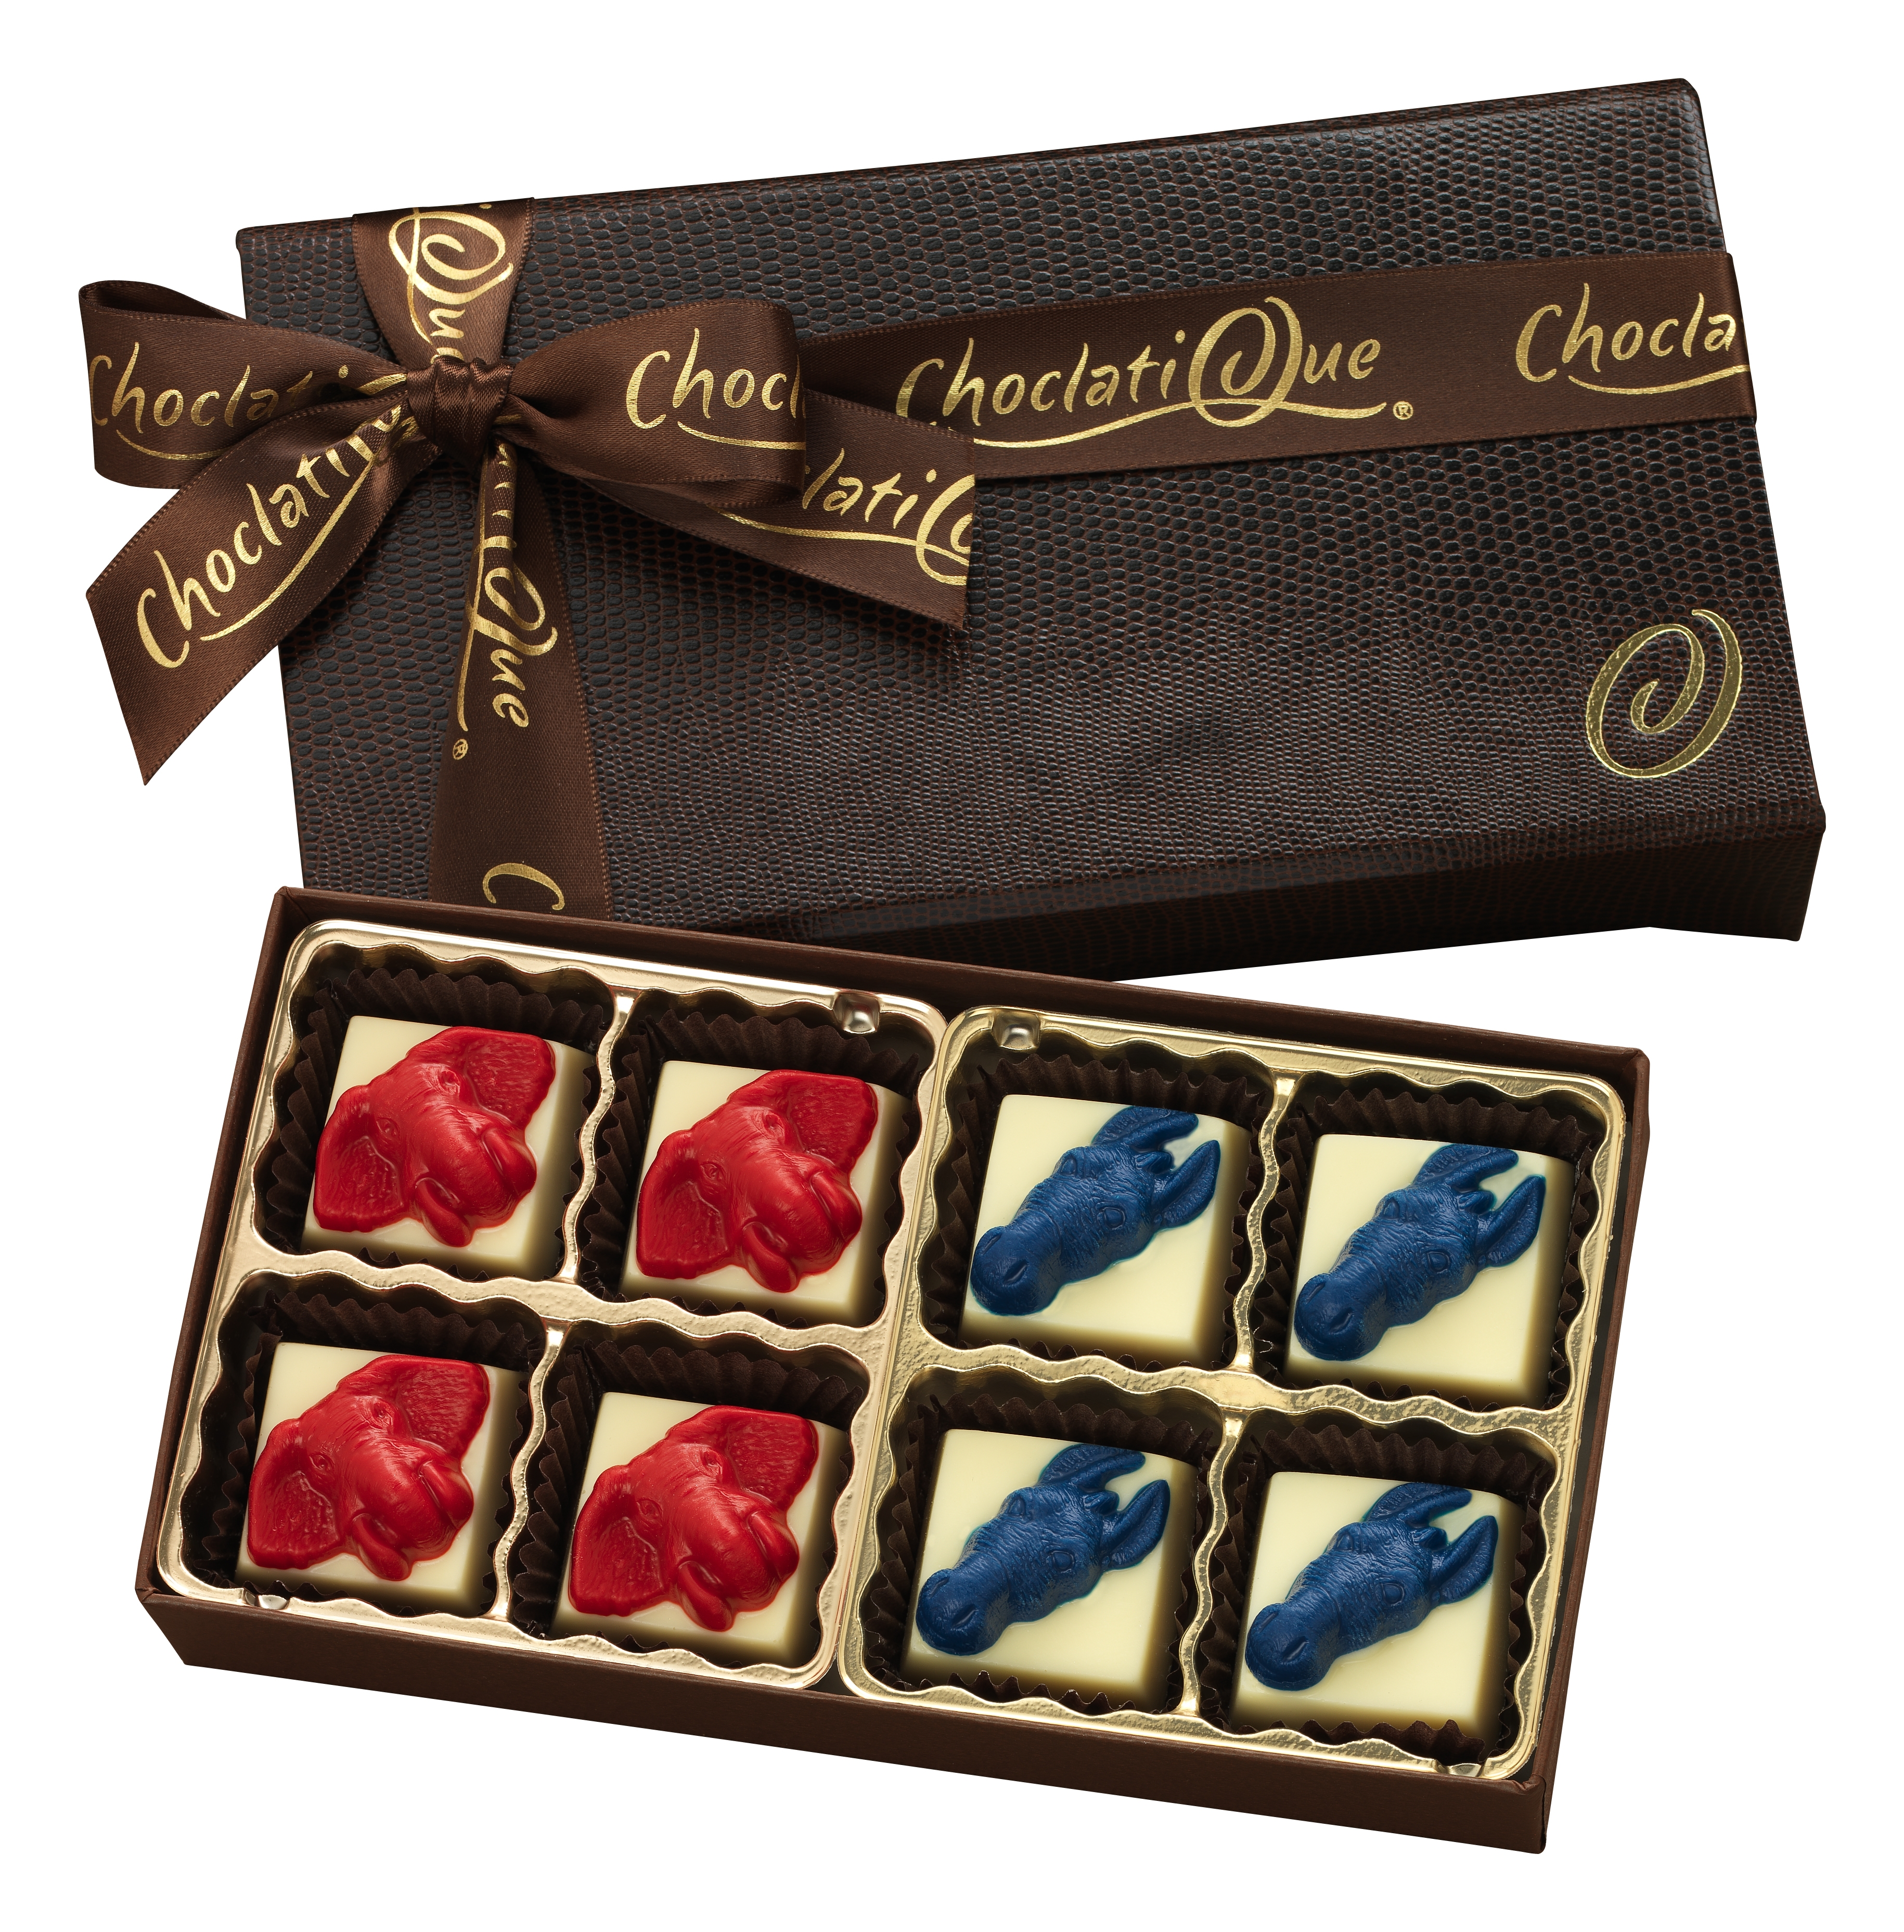 Choclatique Capitol Collection 1